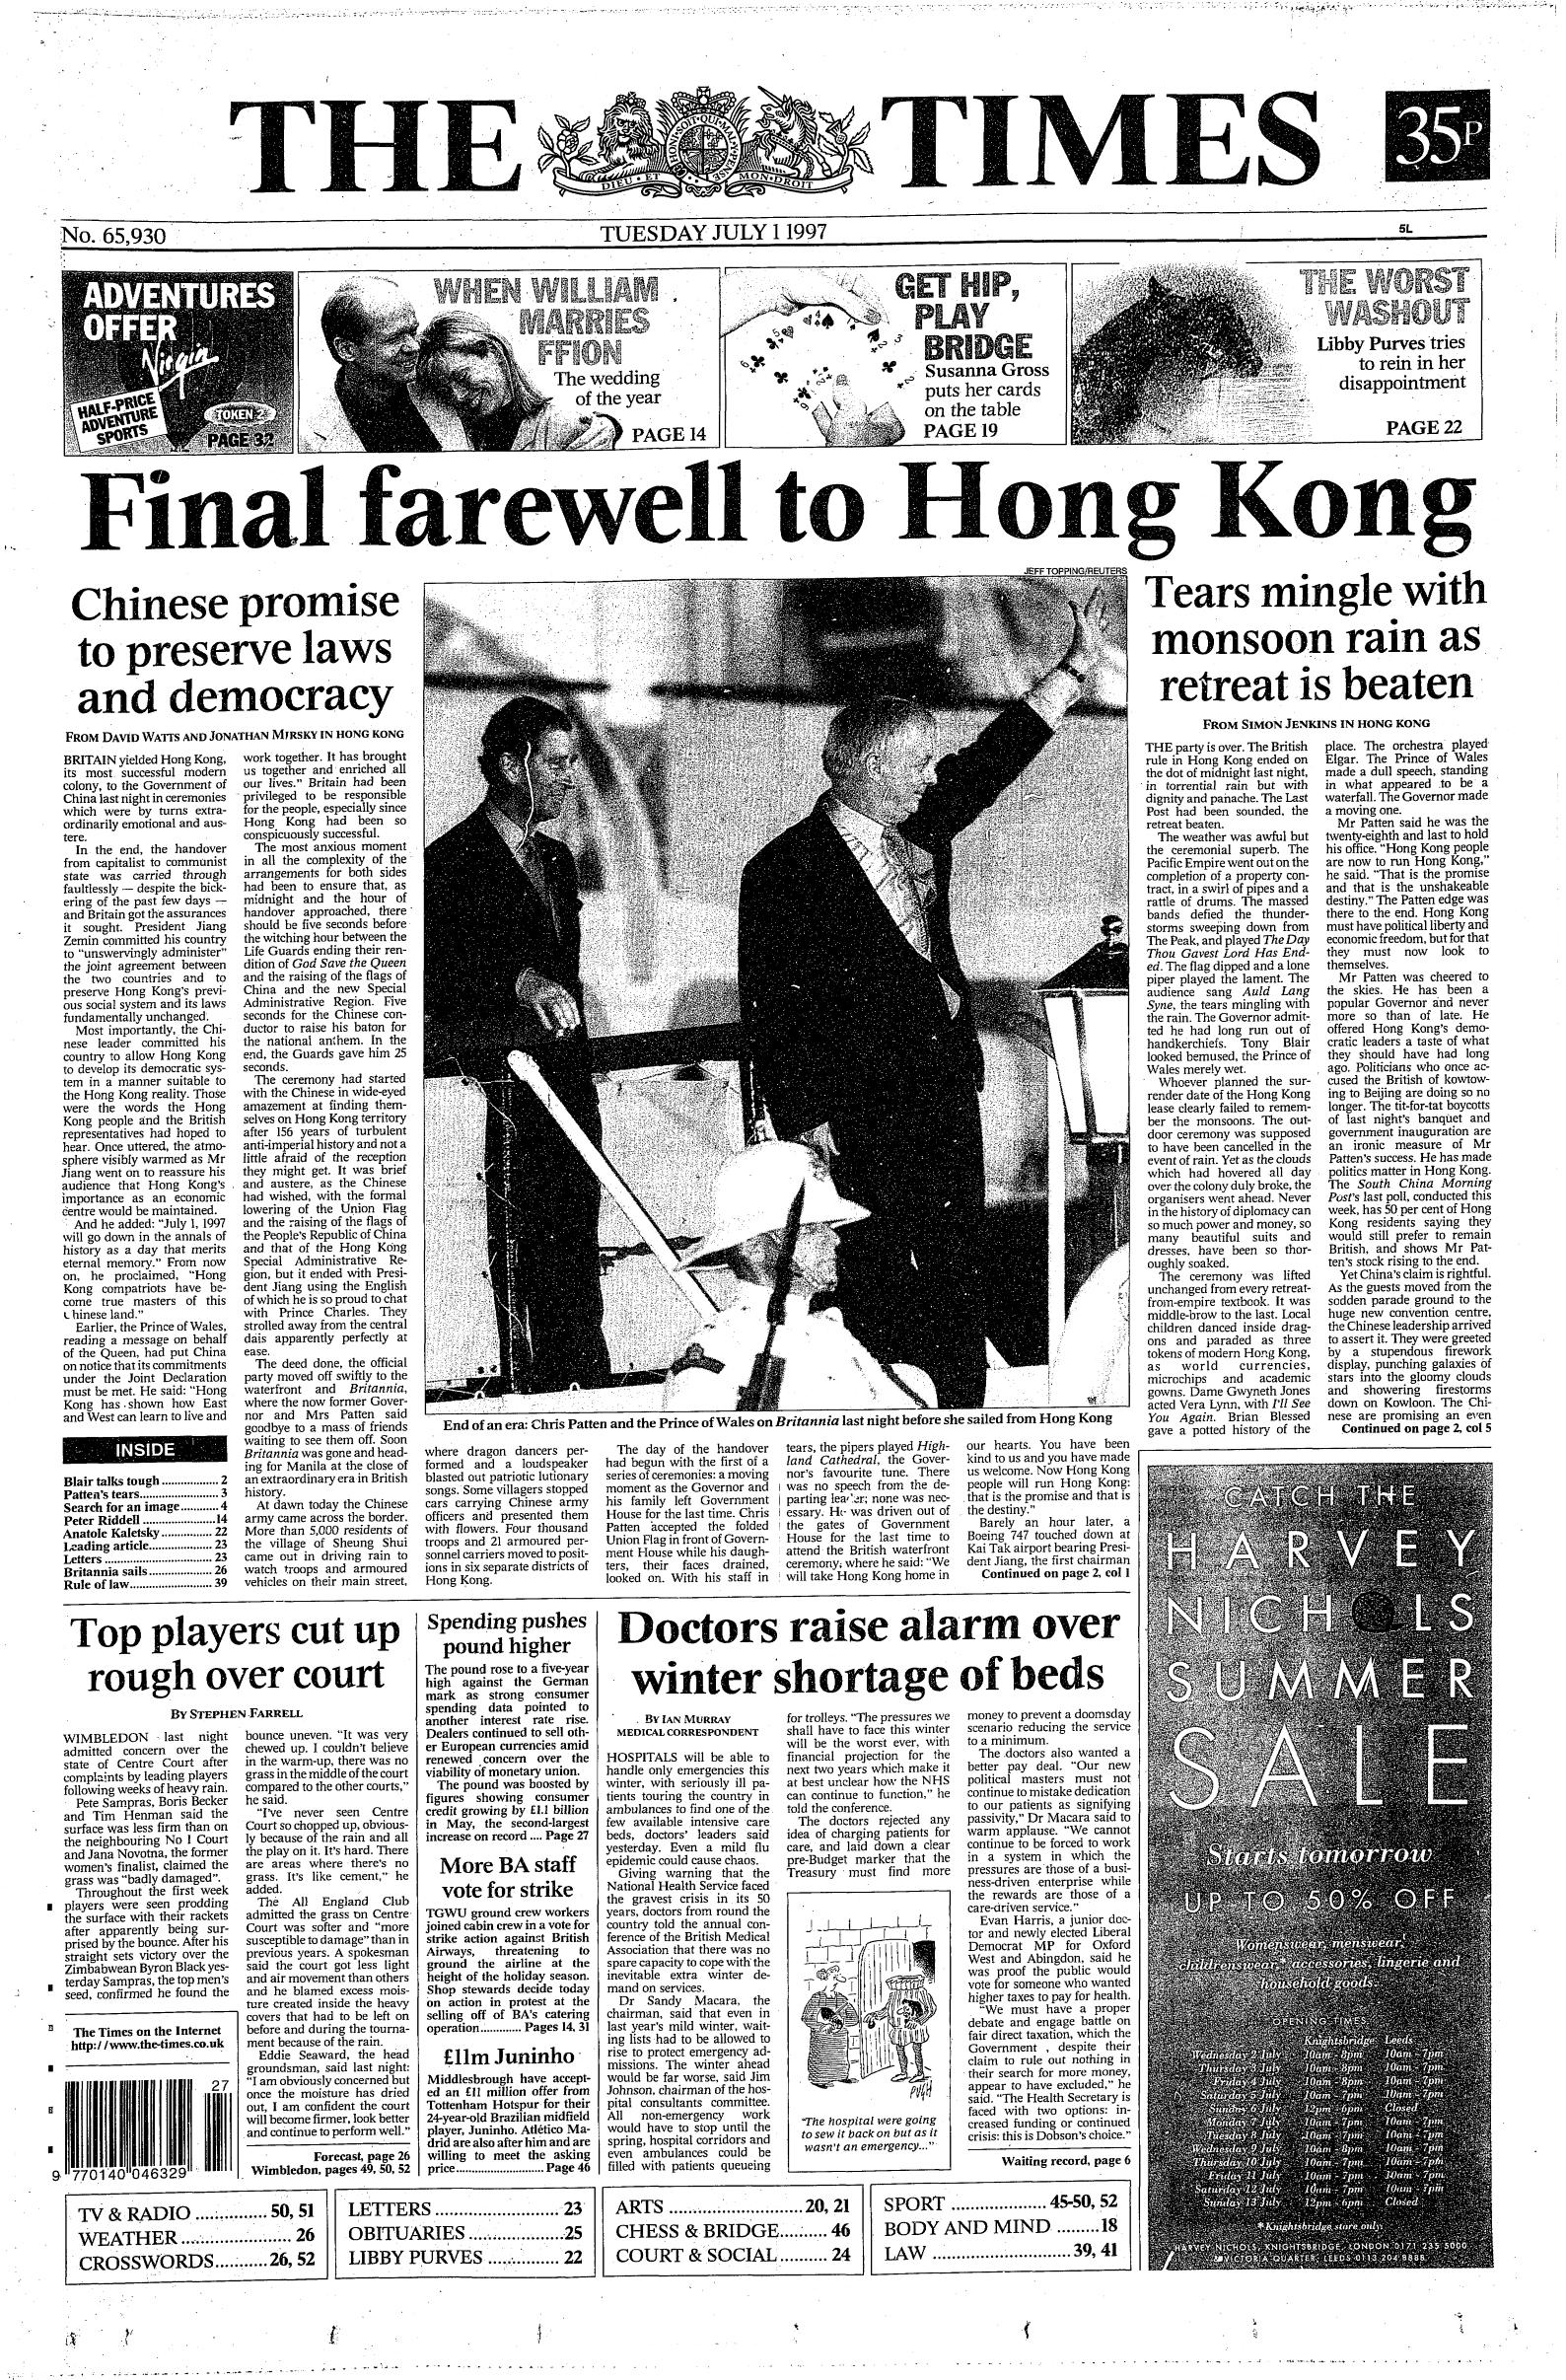 Tears, Cheers, The Archers, and Soy Sauce: The Hong Kong Handover of 1997